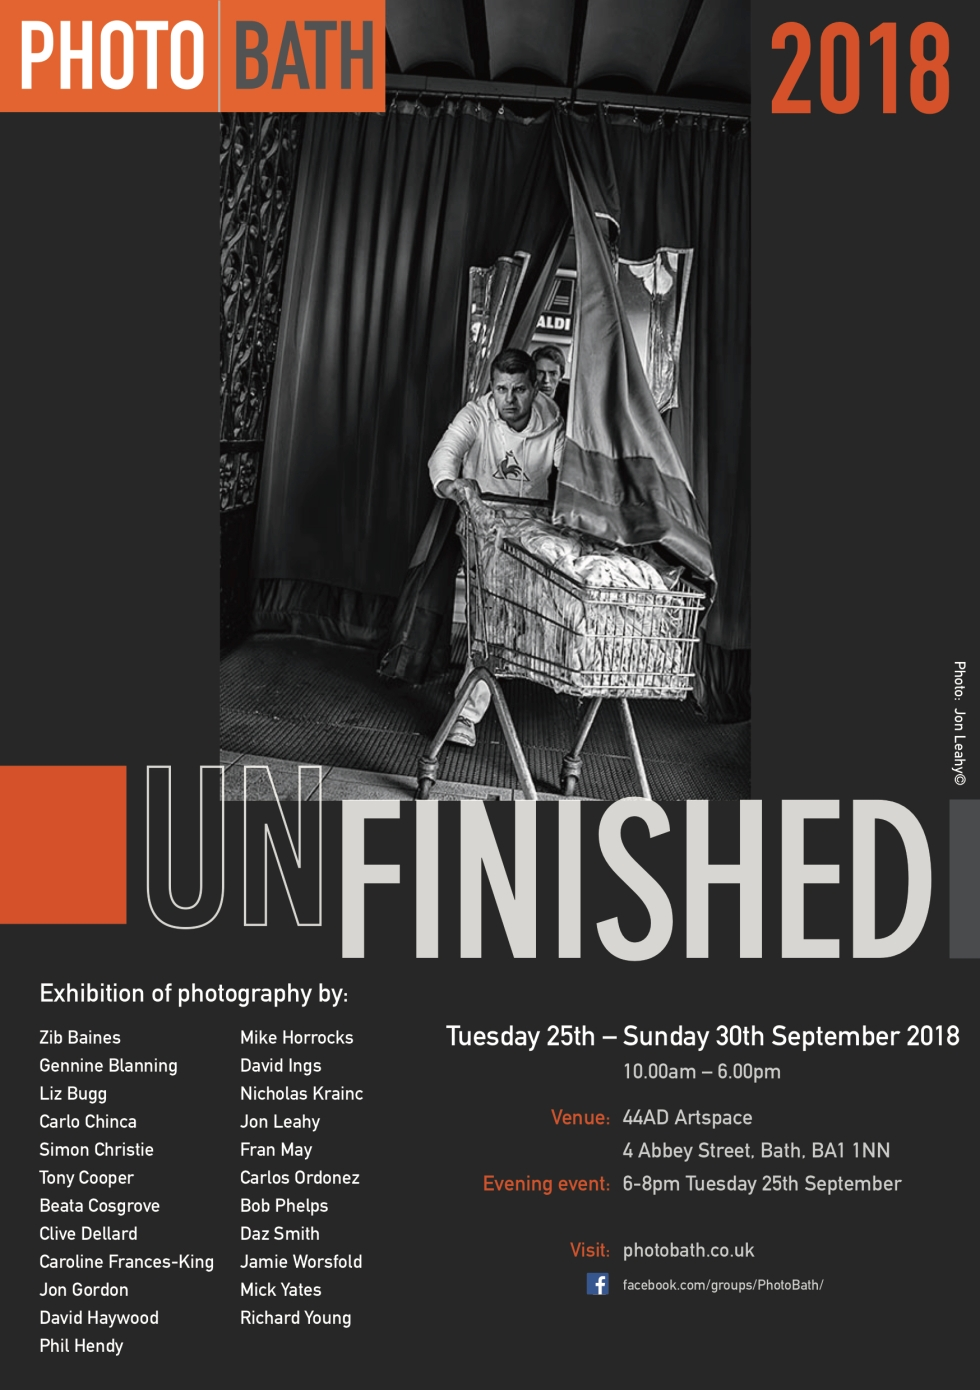 PB-Exhibition-UnFinished-2018-A5flyer-Various3 6